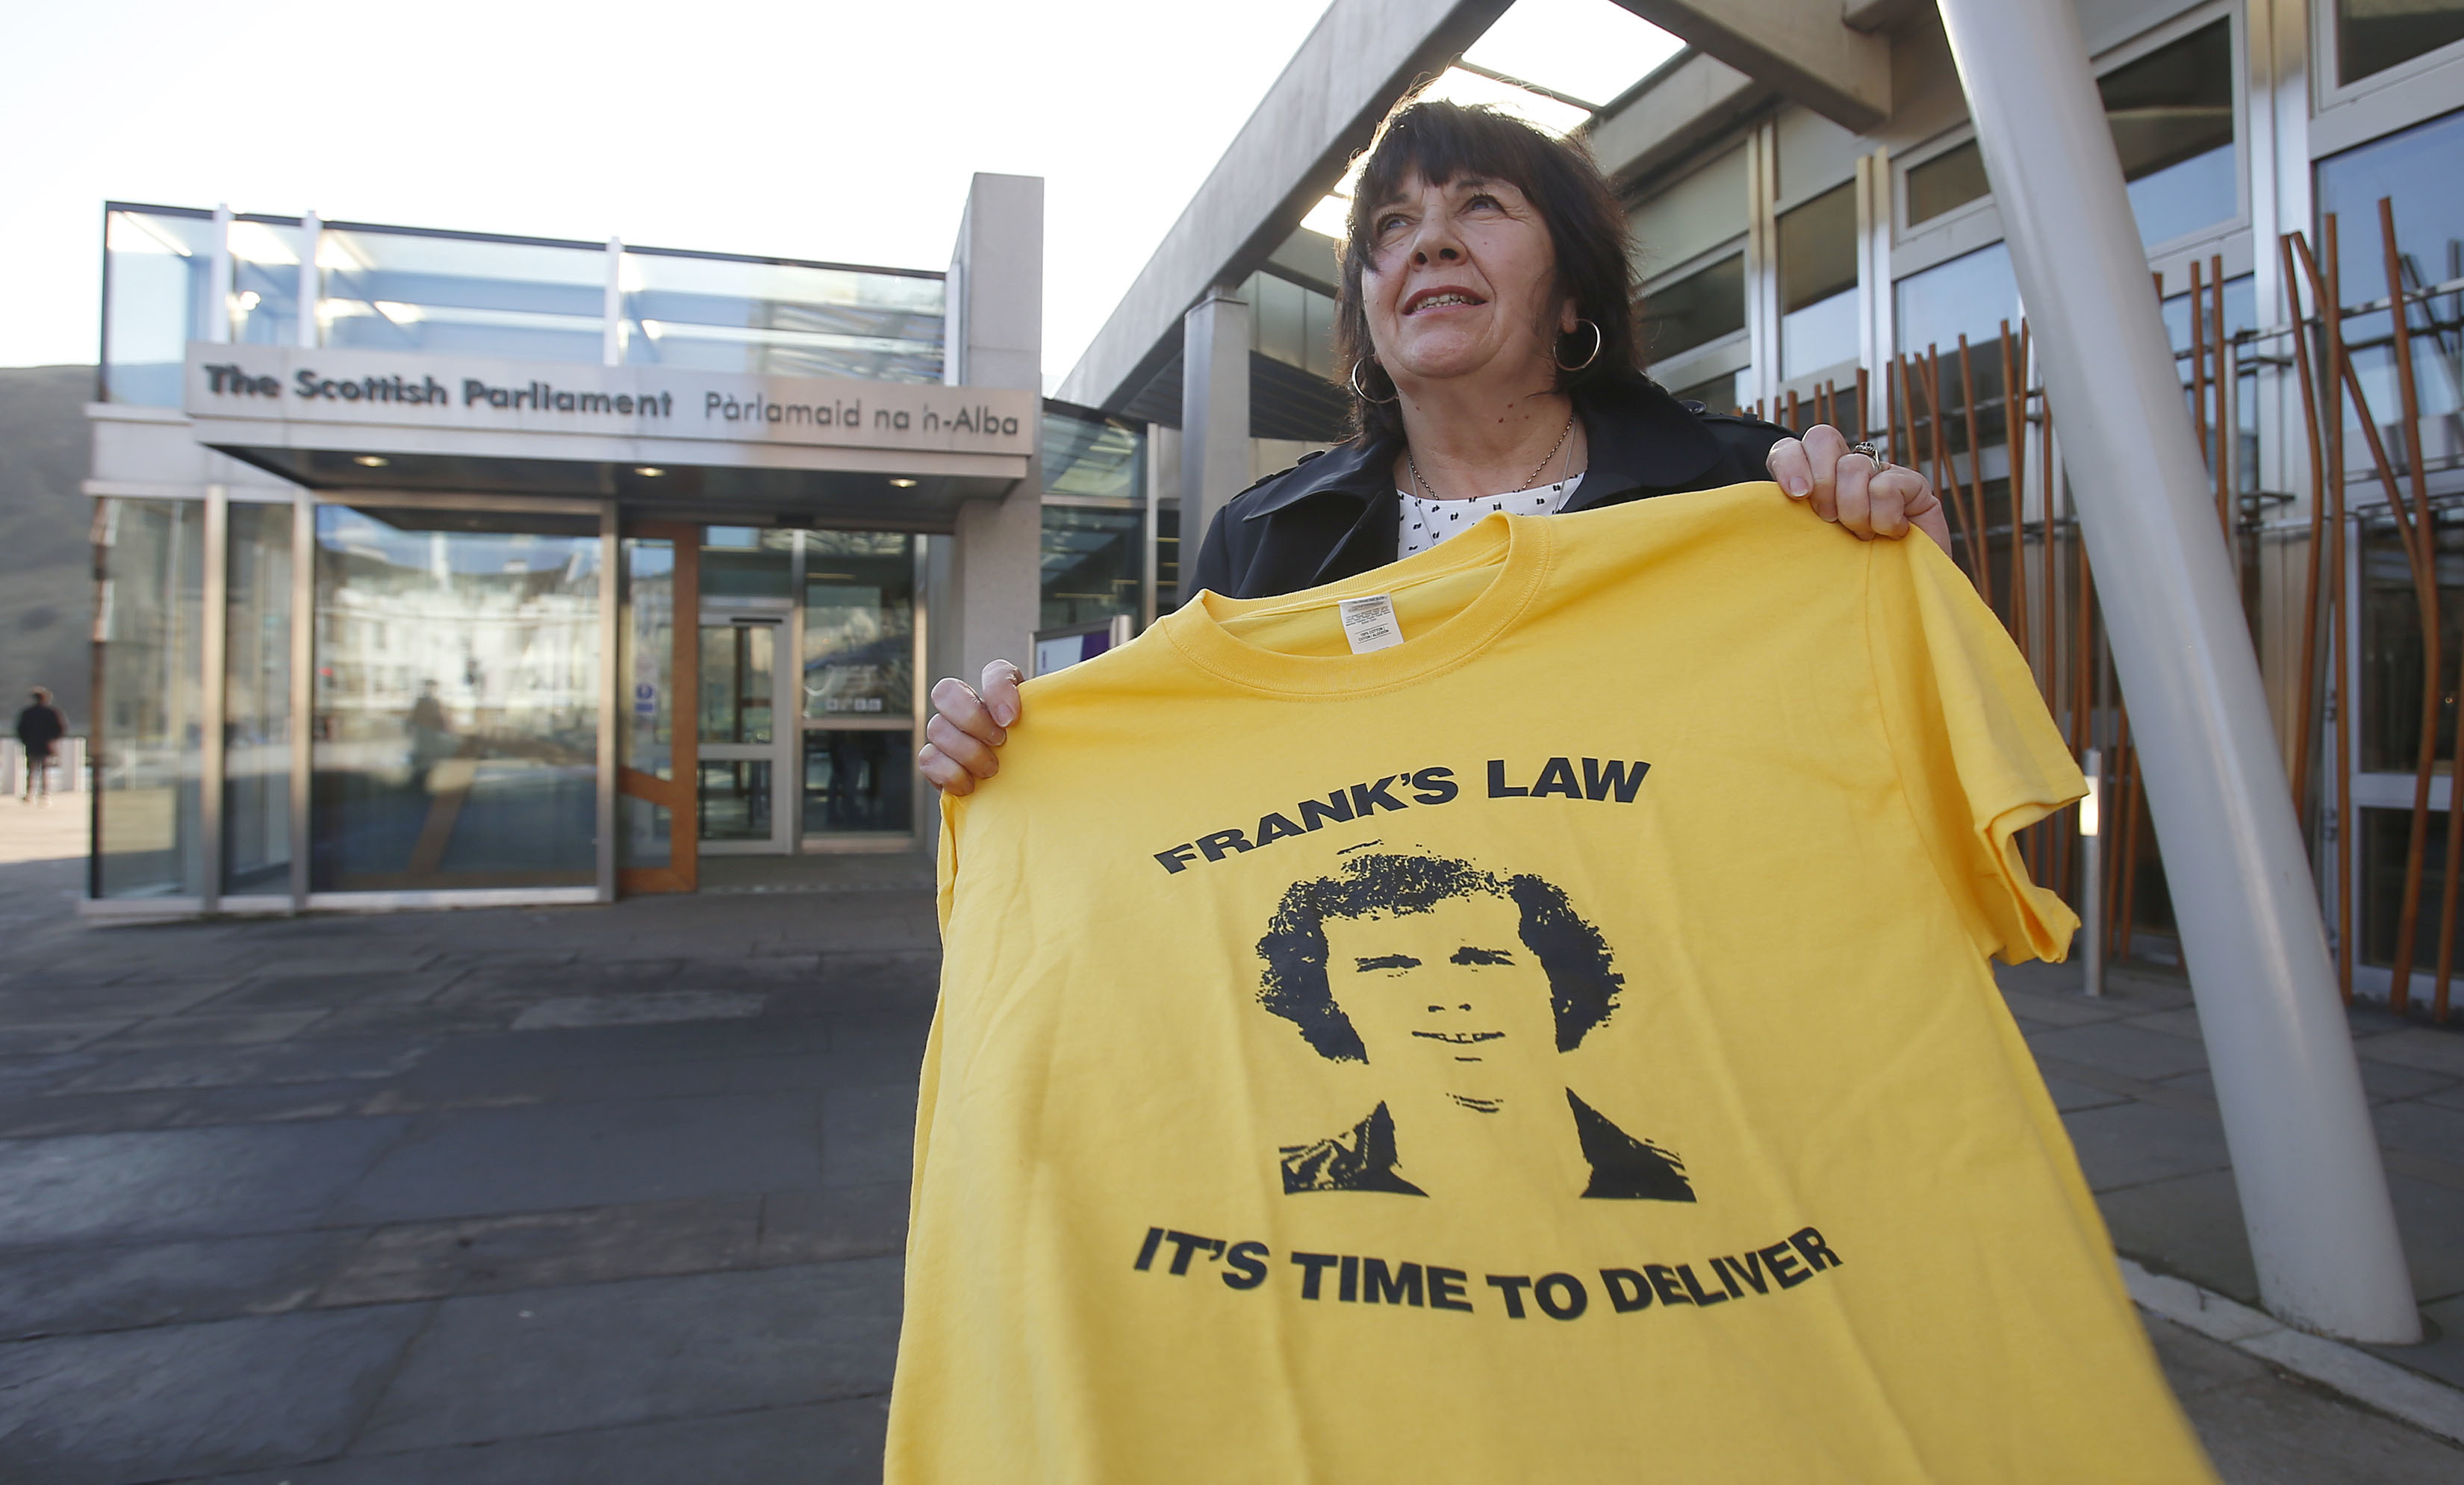 Amanda Kopel campaigning for Frank's Law.